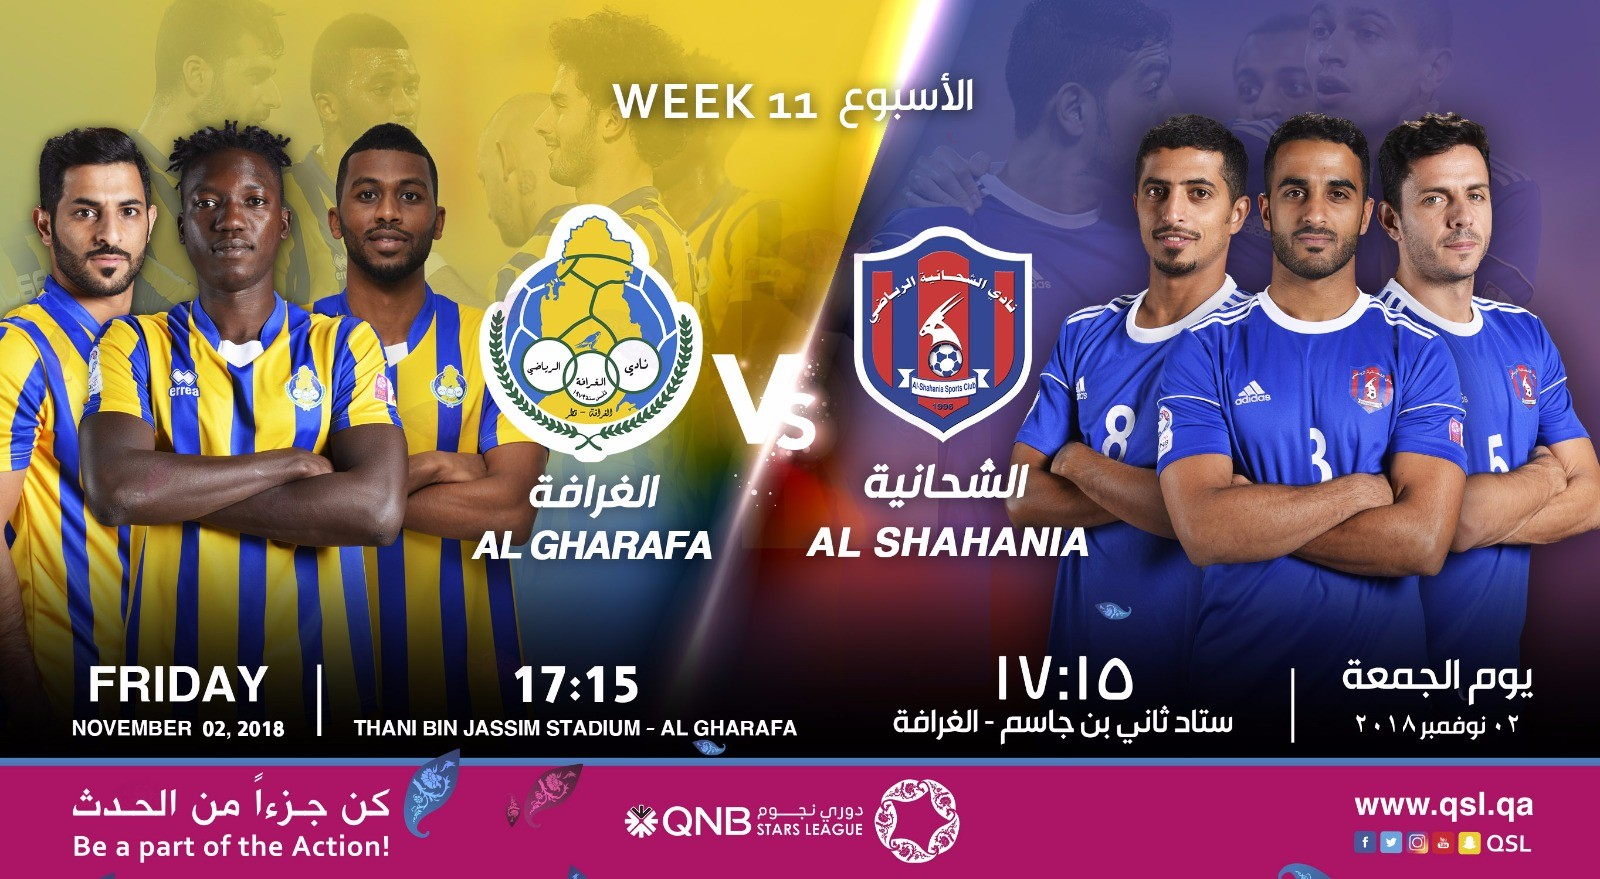 QNB Stars League Week 11 — Al Gharafa vs Al Shahania